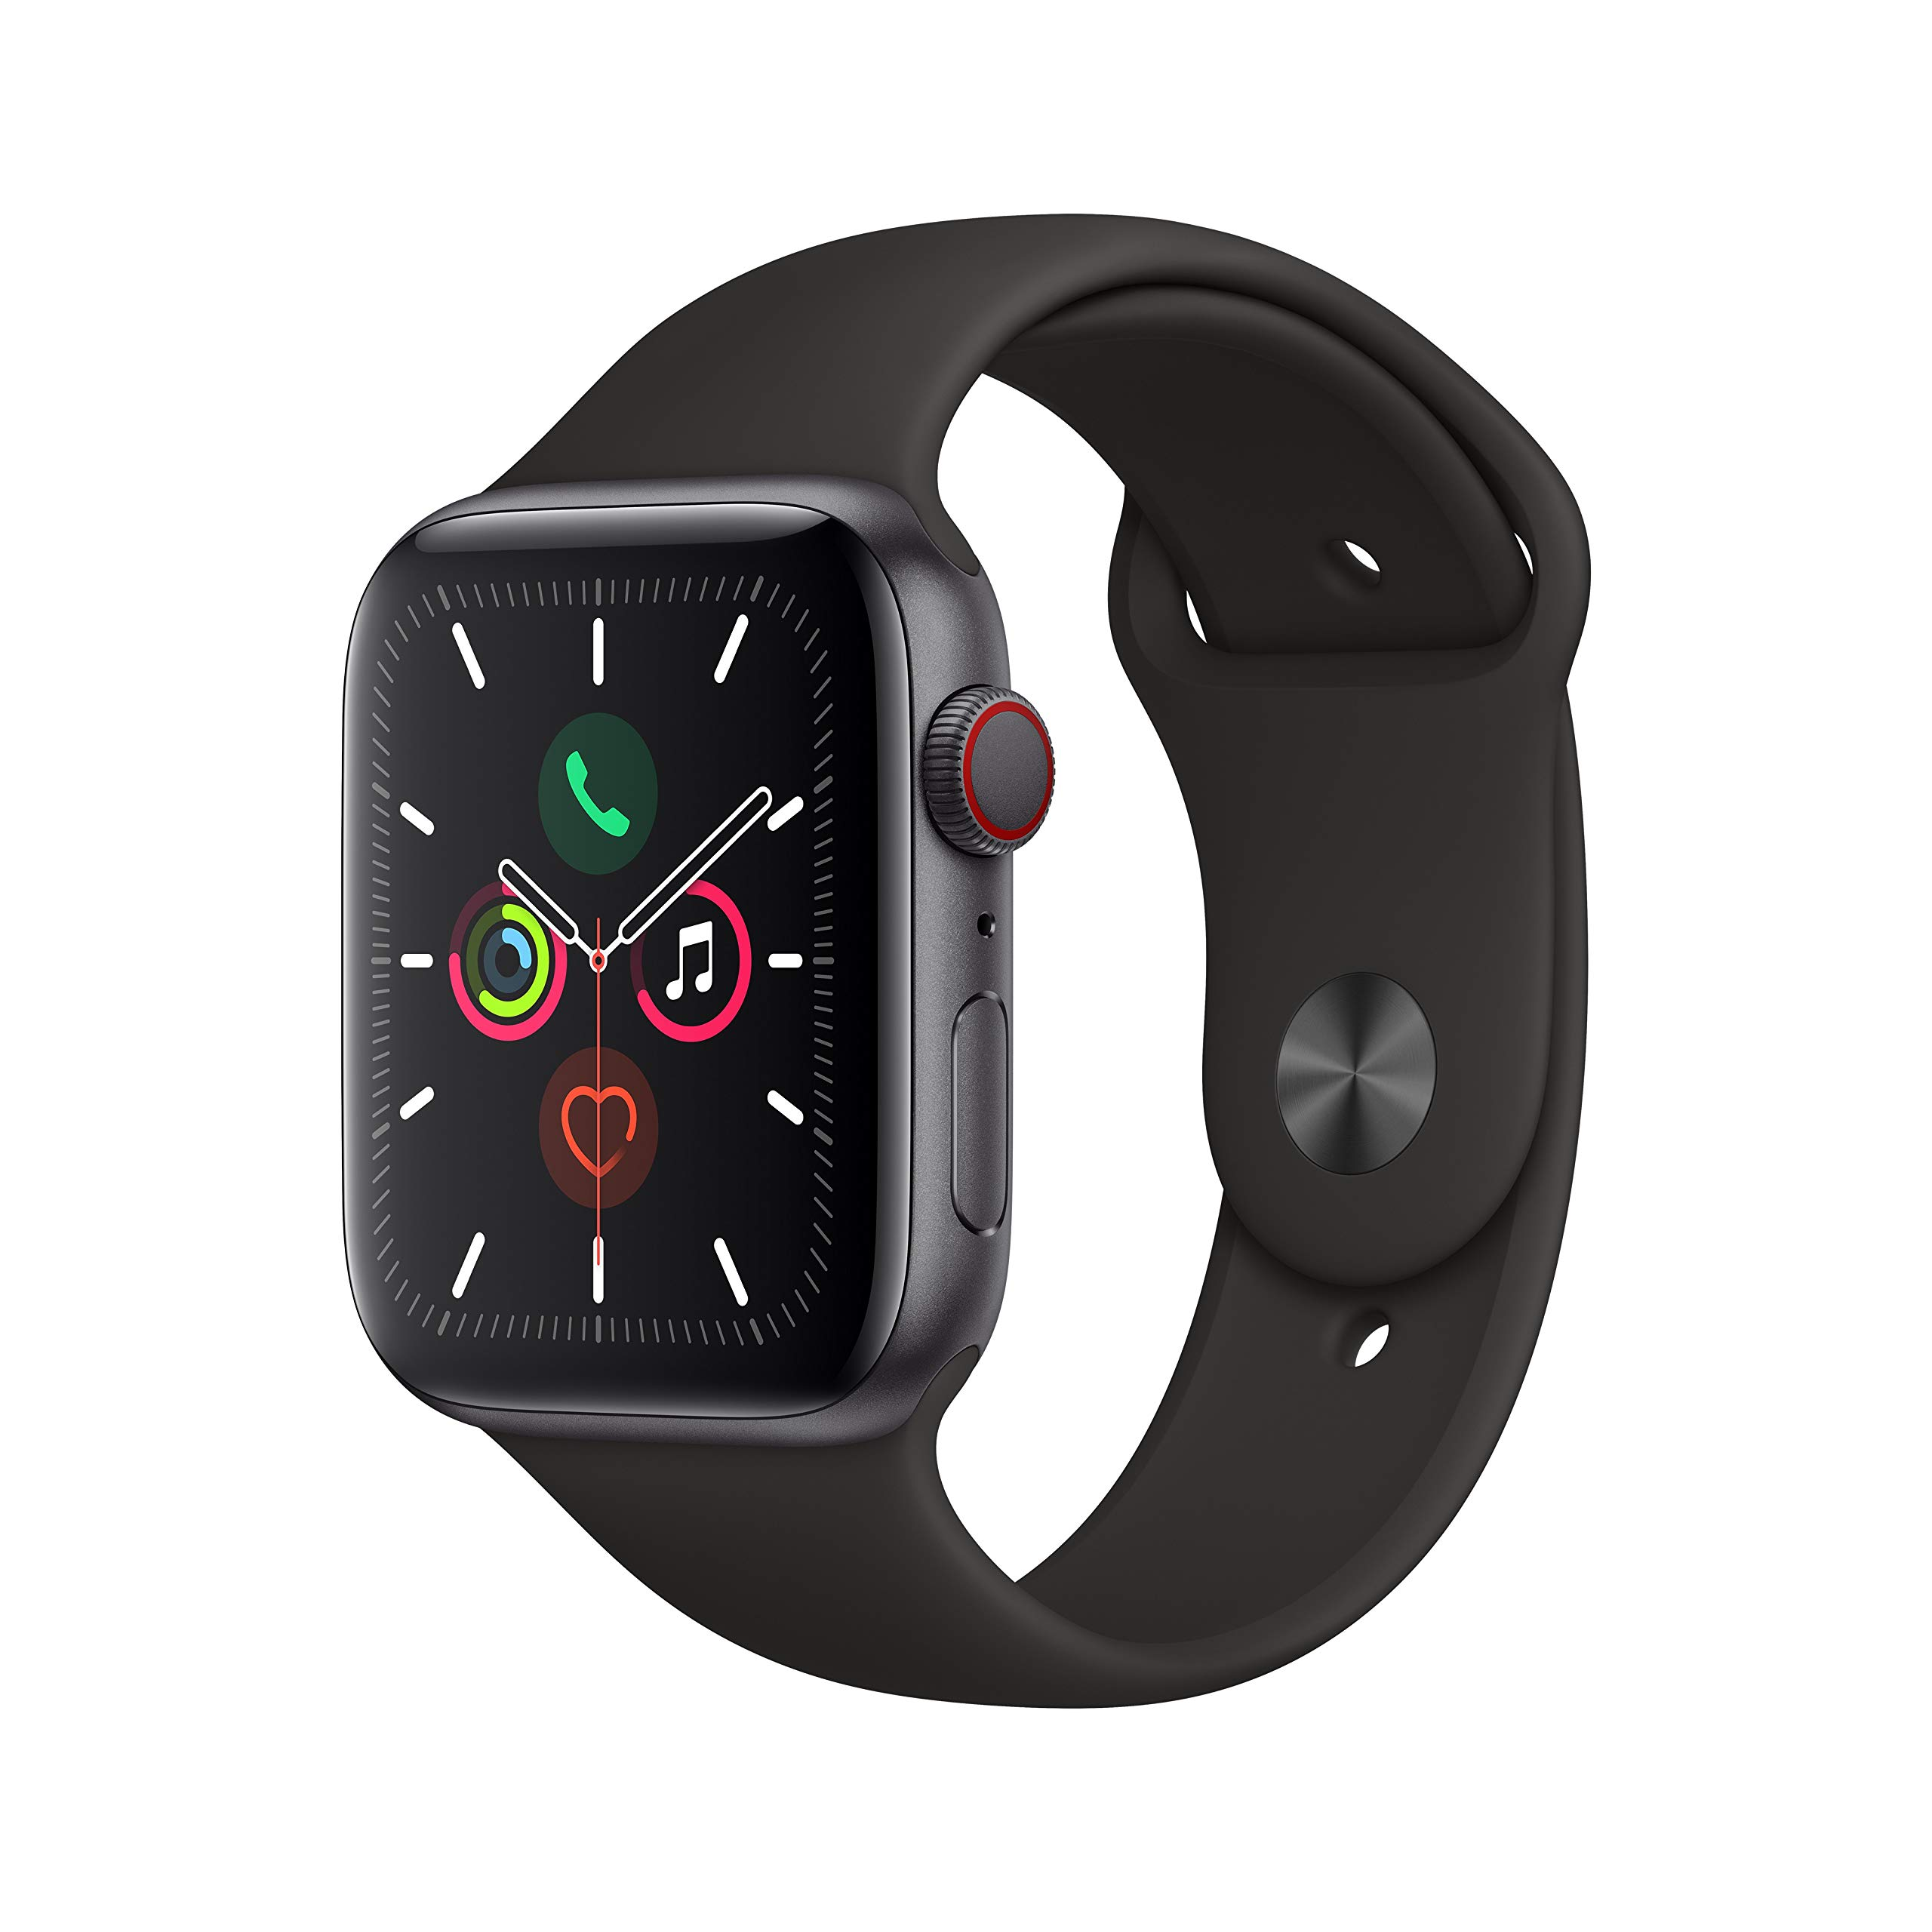 Apple Watch Series 5 (GPS + Cellular, 44mm) - Space Gray Aluminum Case with Black Sport Band by Apple